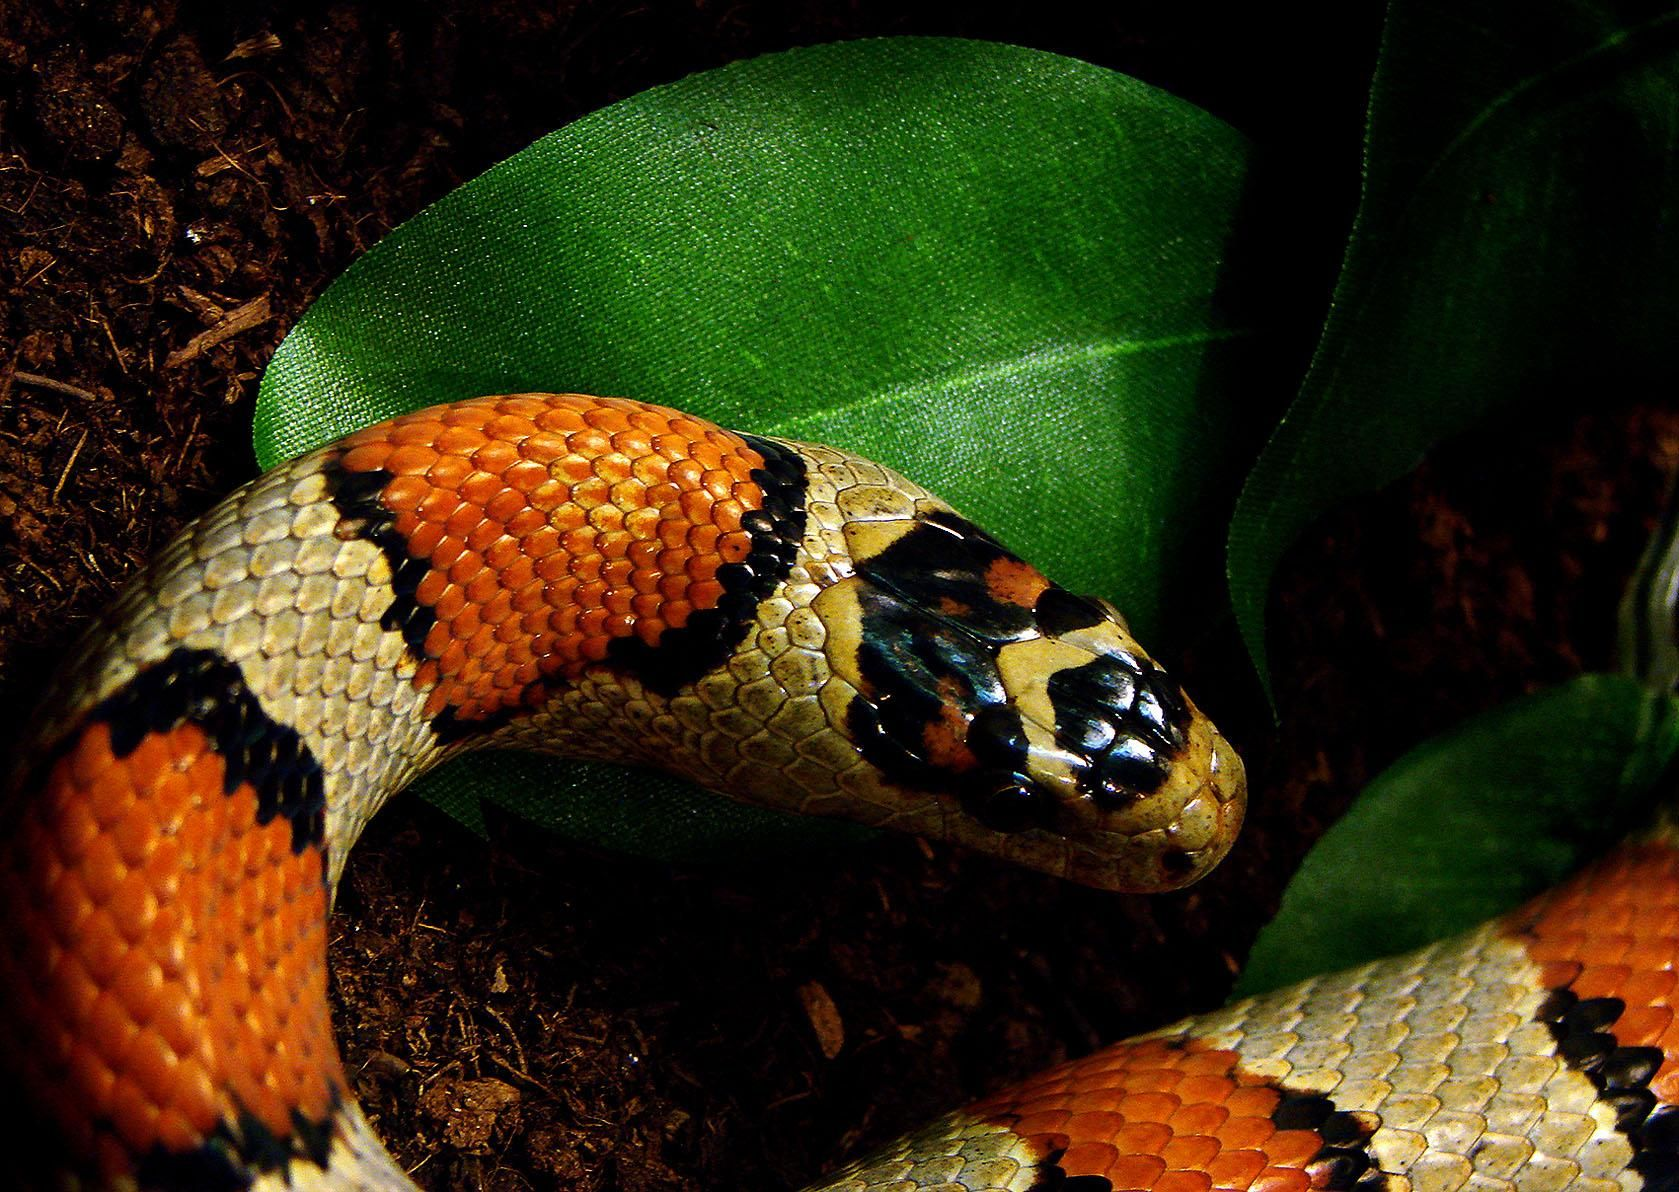 Grey banded king snake Genesis story, Adam and eve